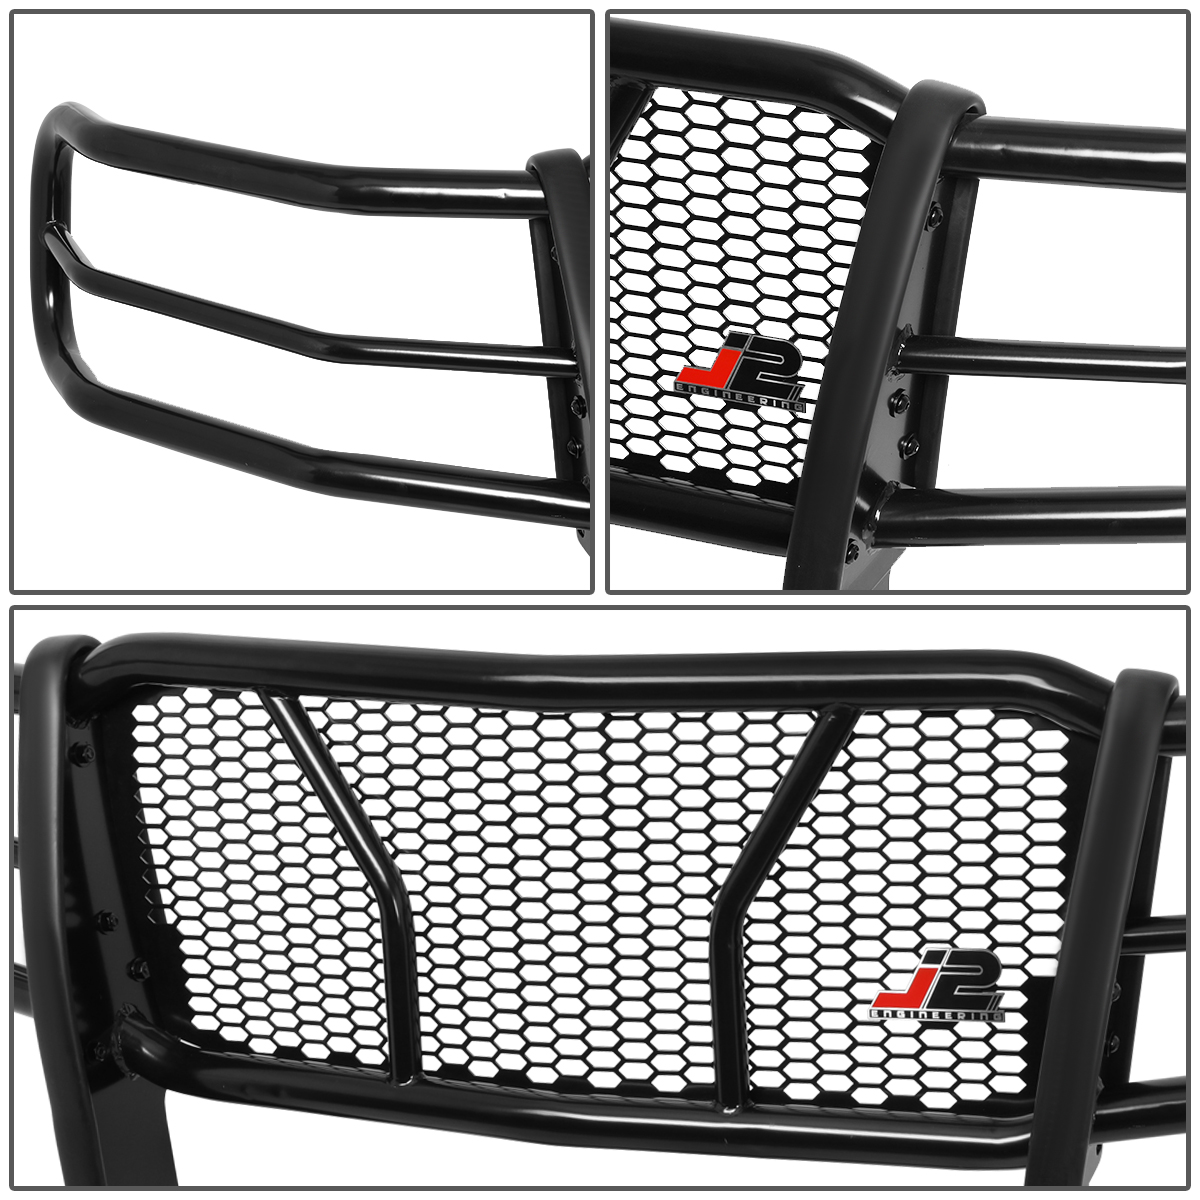 Mild Steel Front Bumper Headlight//Grille Brush Guard for 11-14 Chevy Silverado 2500HD//3500HD